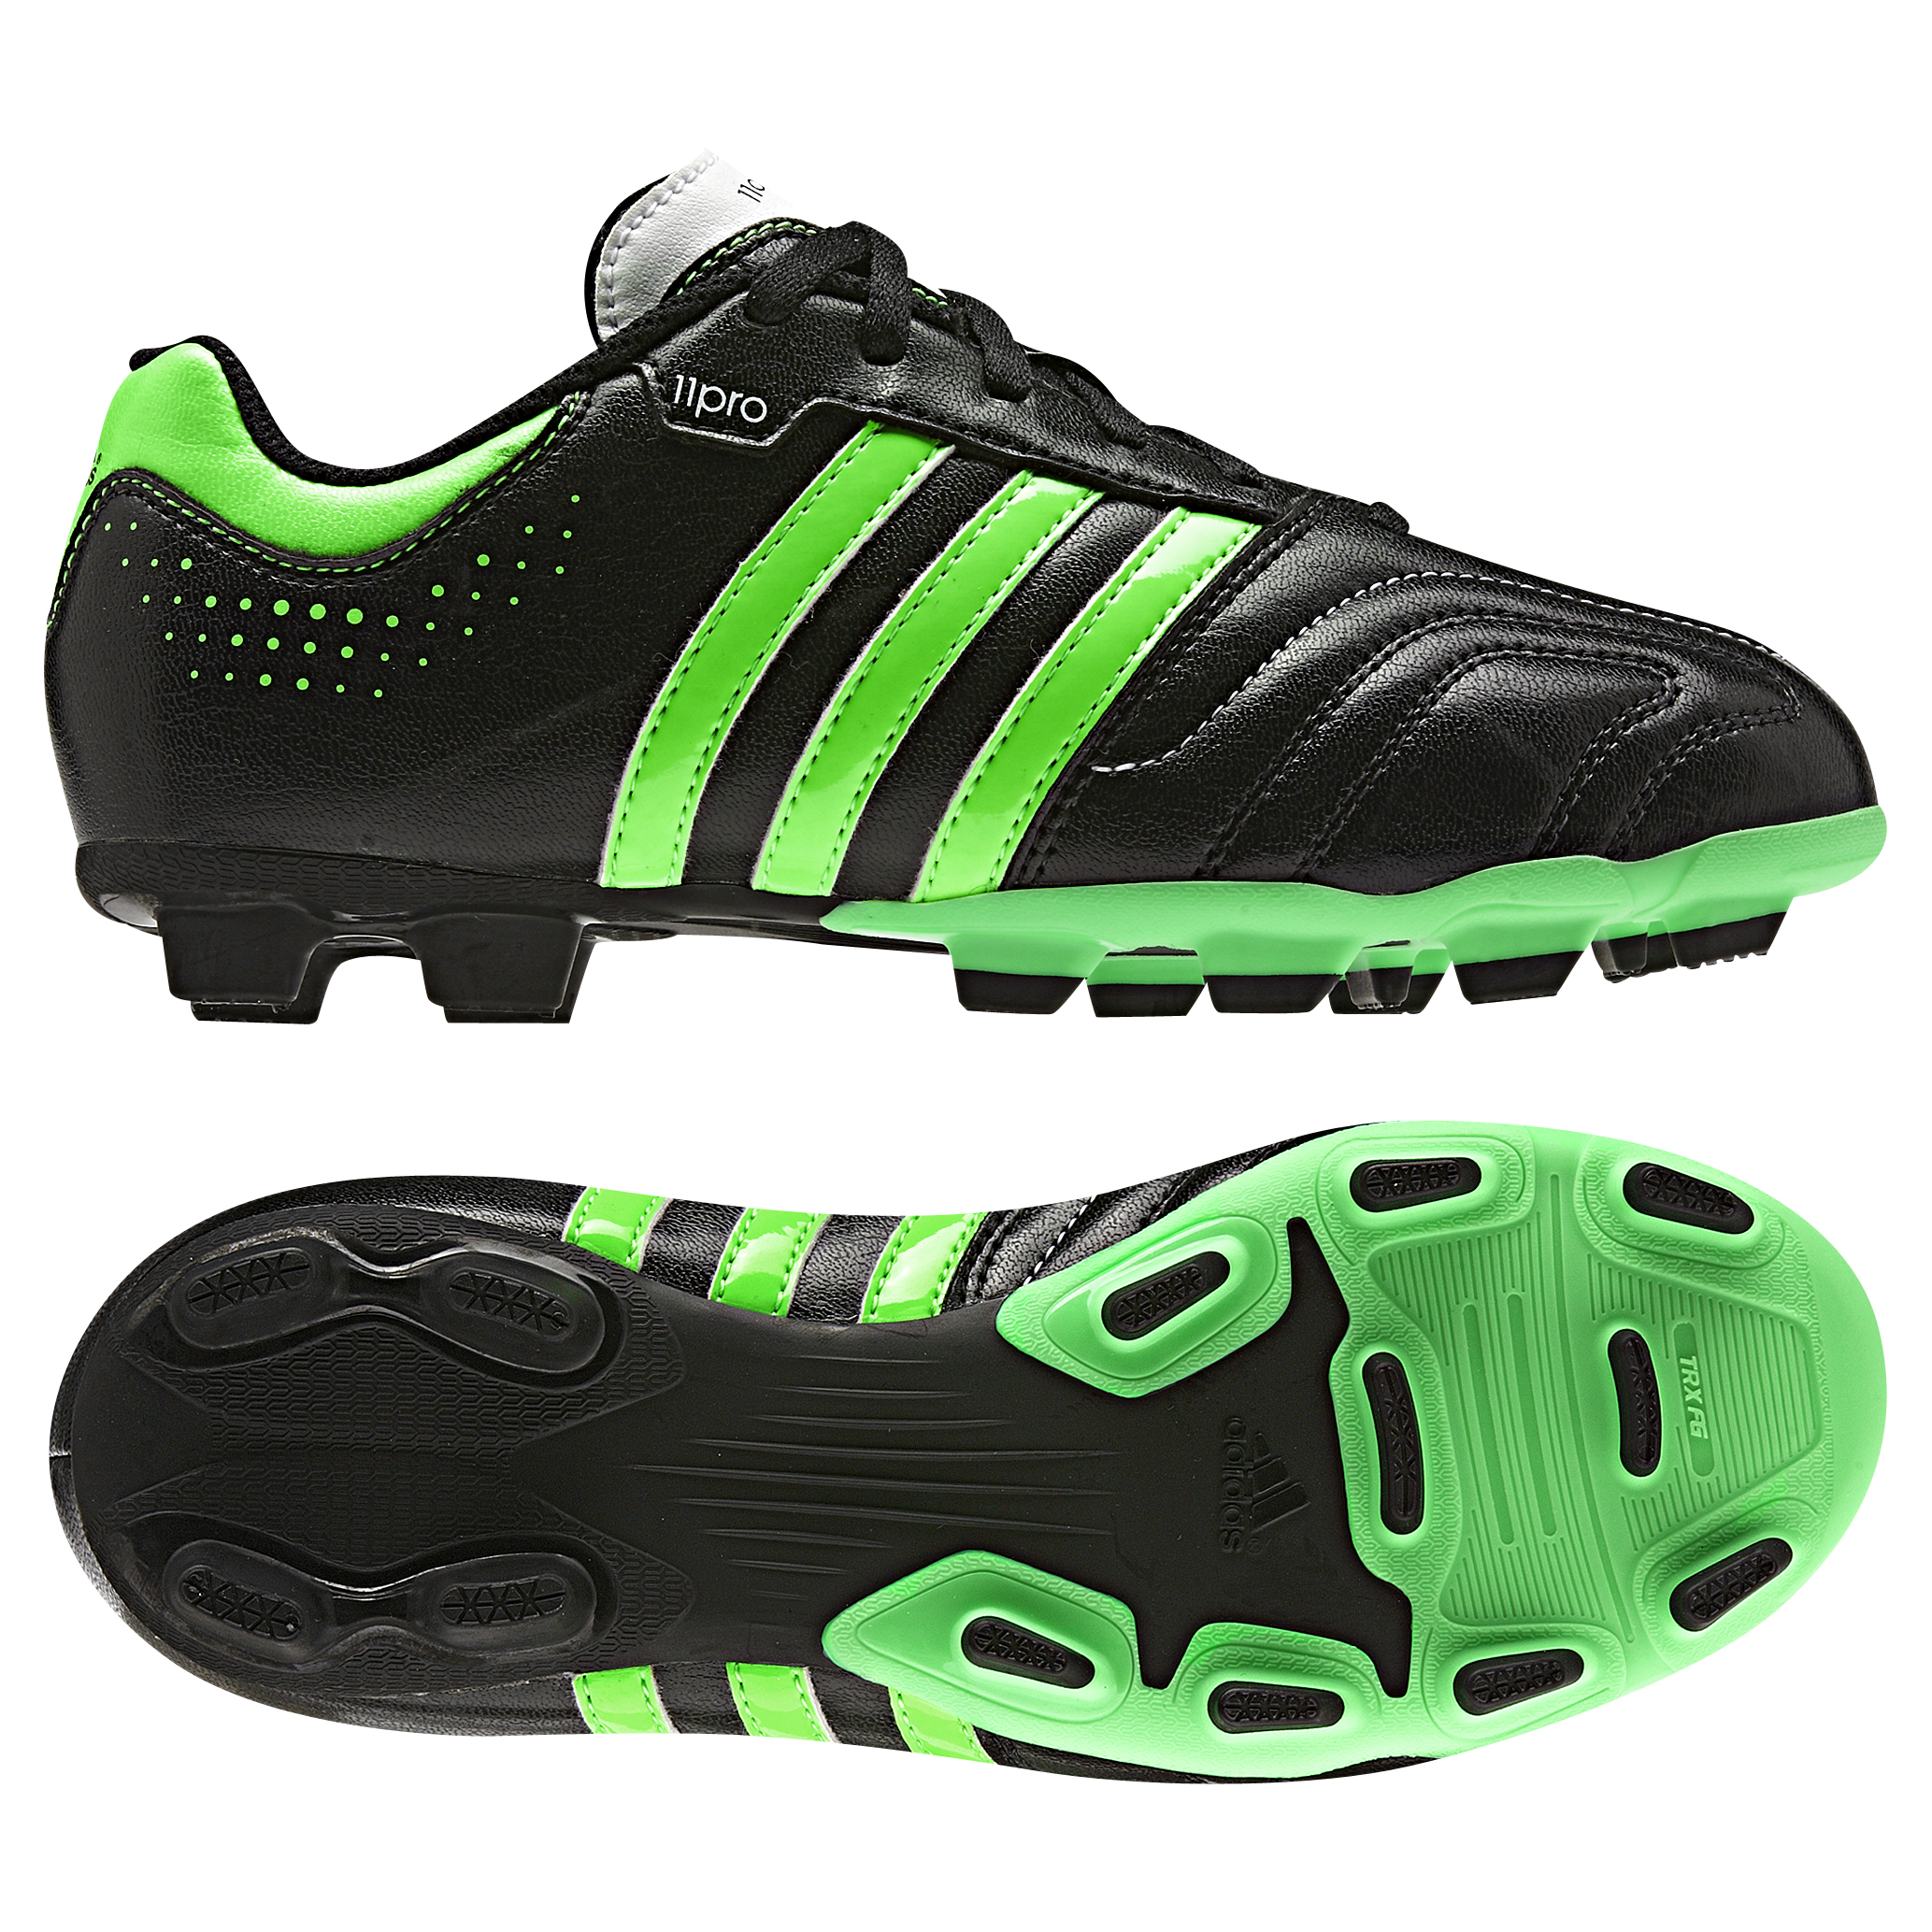 AdiPure 11Questra TRX FG Black/Green Zest/Running White  Kids